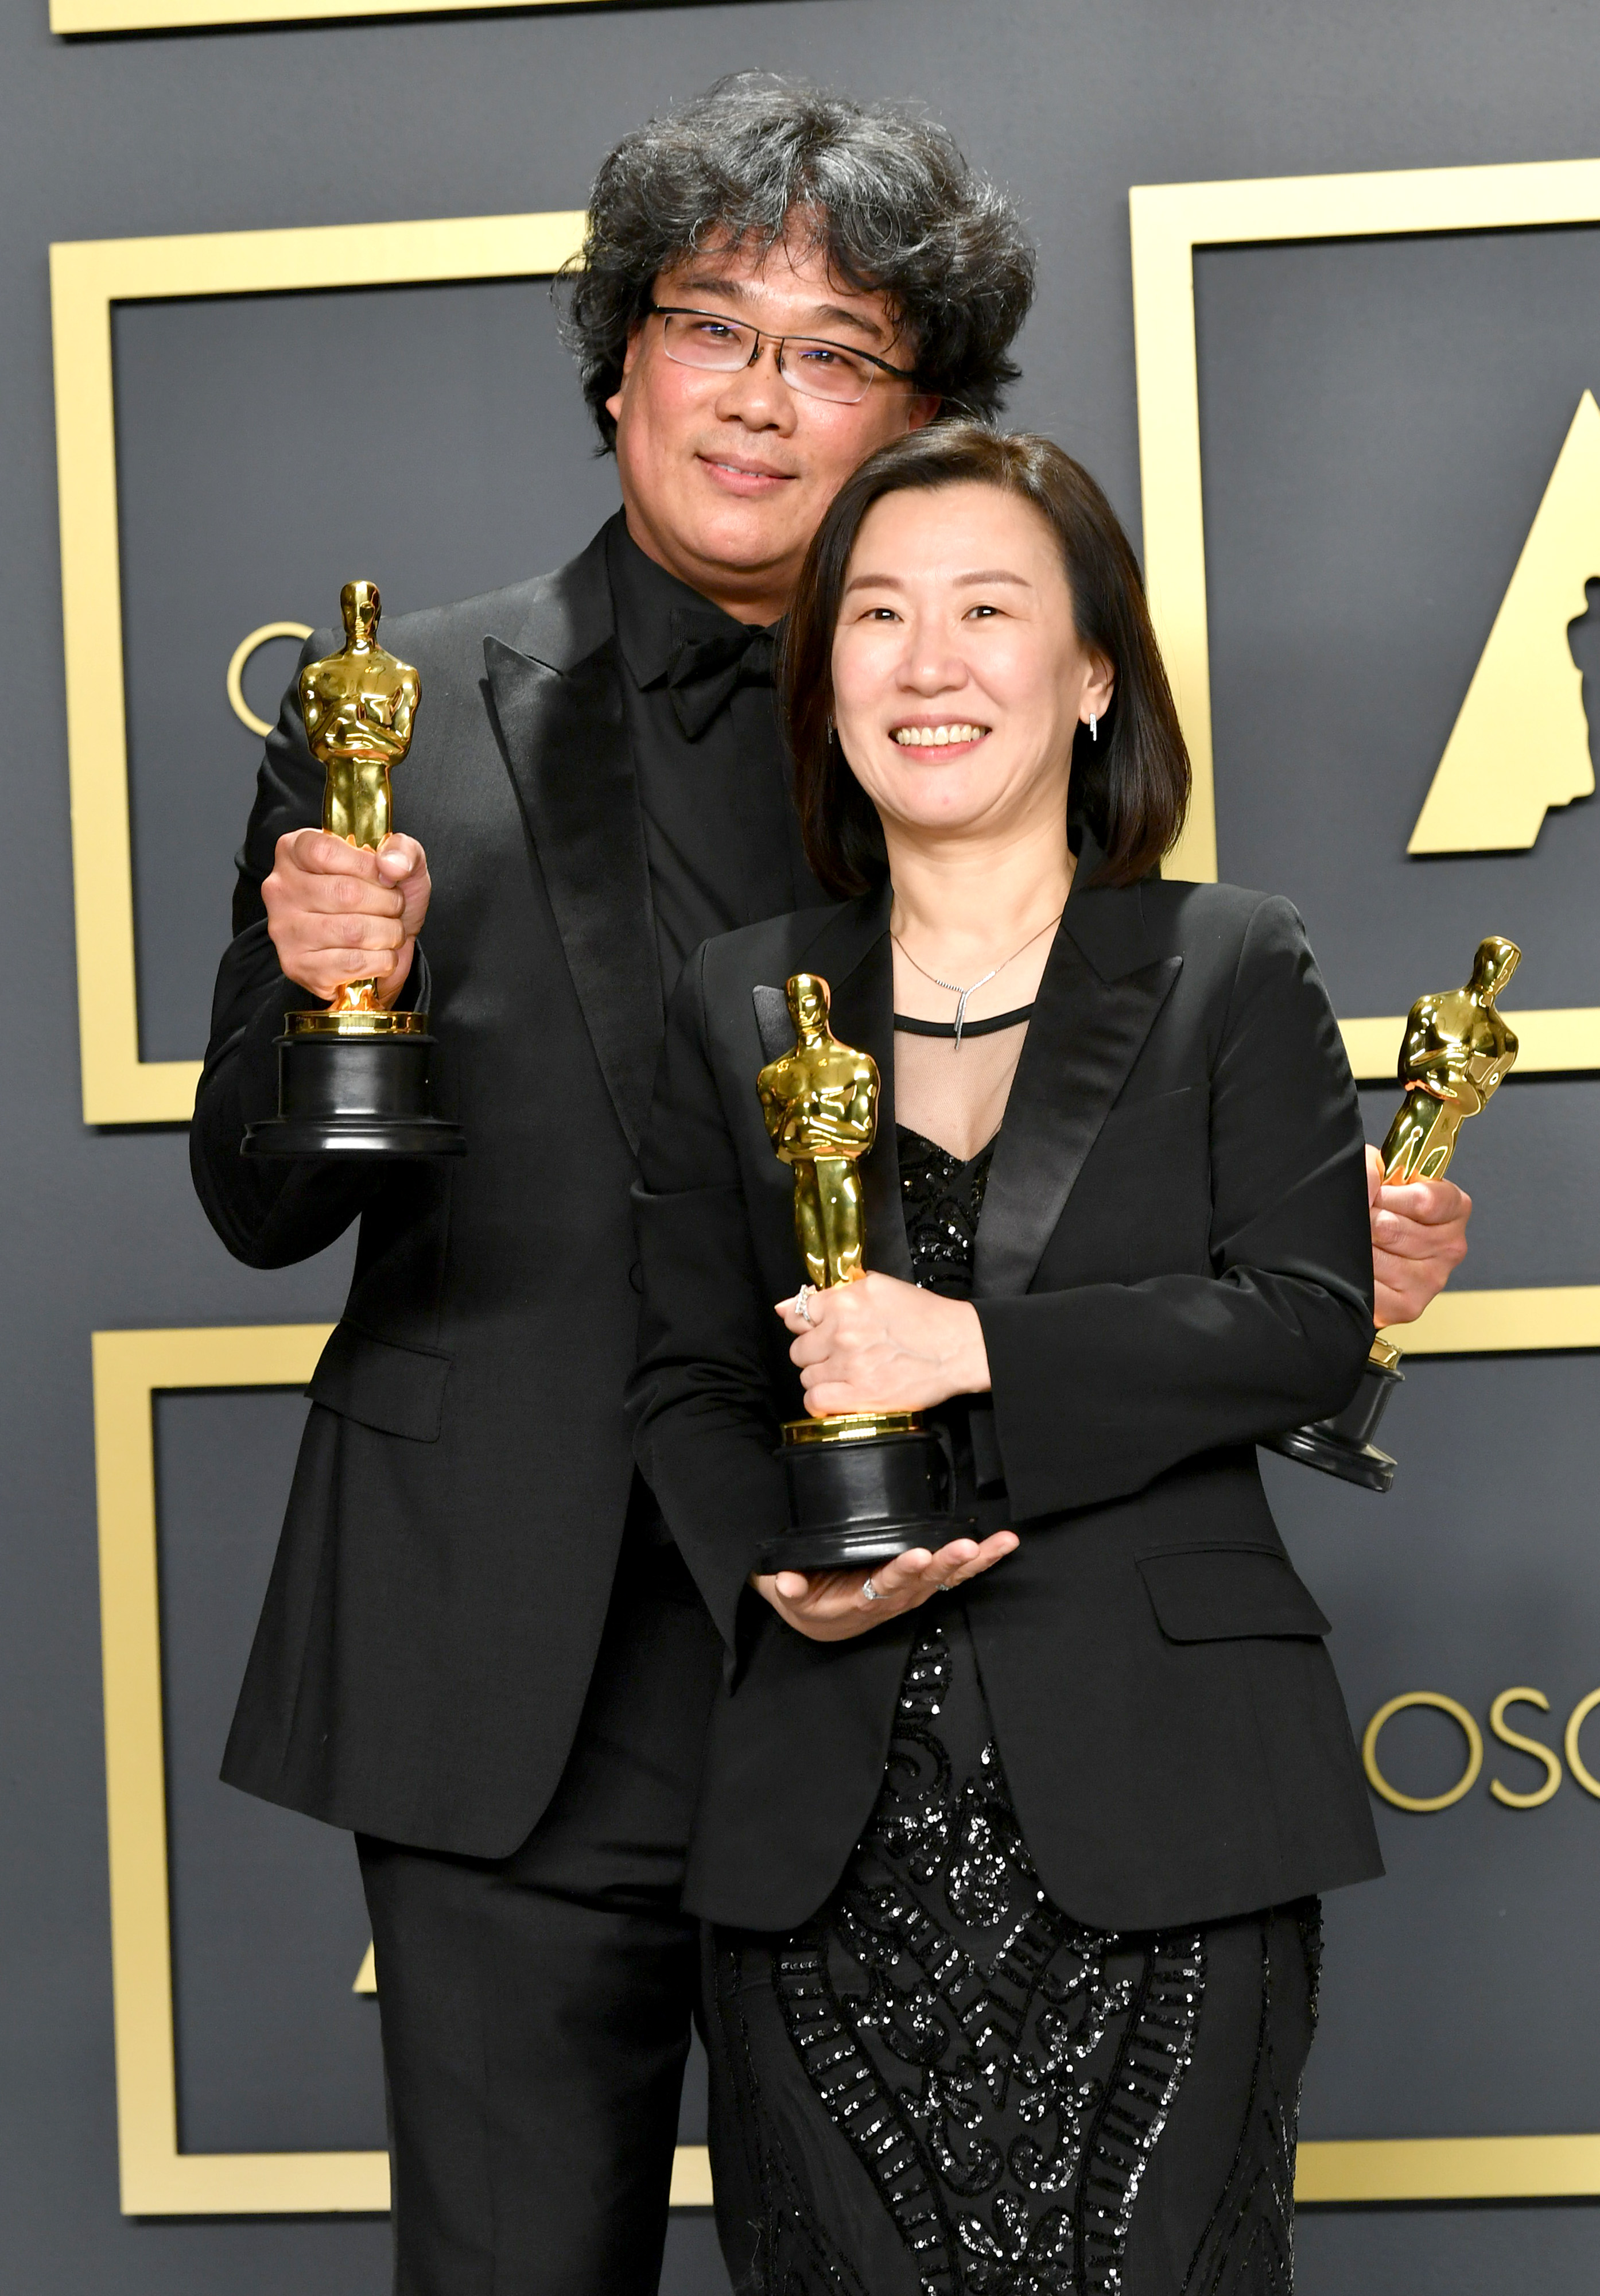 """Director Bong Joon-ho and producer Kwak Sin-ae, winners of the Original Screenplay, International Feature Film, Directing, and Best Picture awards for """"Parasite,""""  pose in the press room during the 92nd Annual Academy Awards at Hollywood and Highland on February 09, 2020 in Hollywood, California. (Photo by Amy Sussman/Getty Images)"""